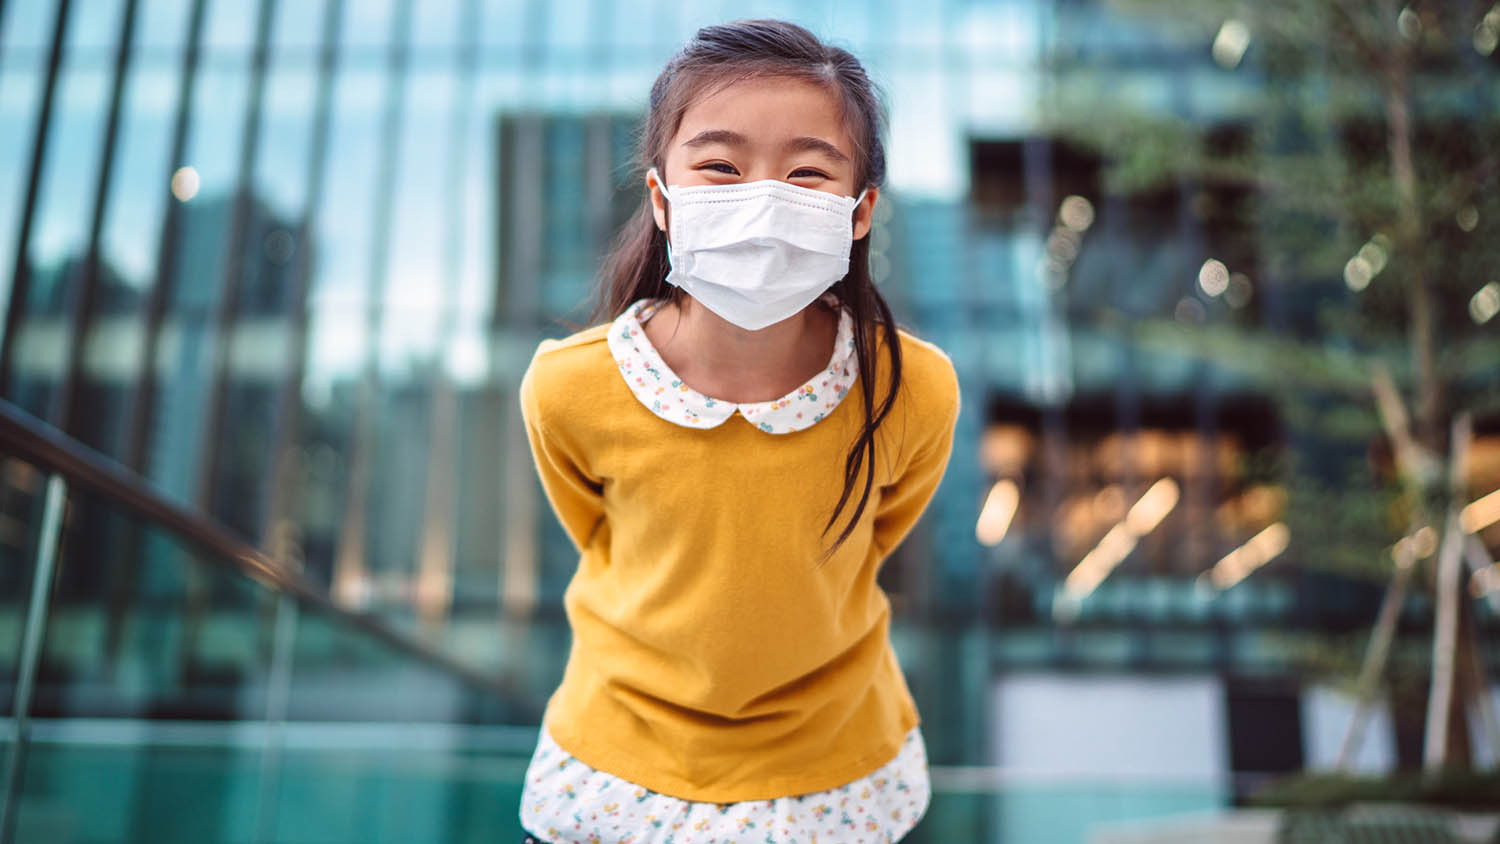 The Best Face Masks for Kids, From Toddlers to Teens